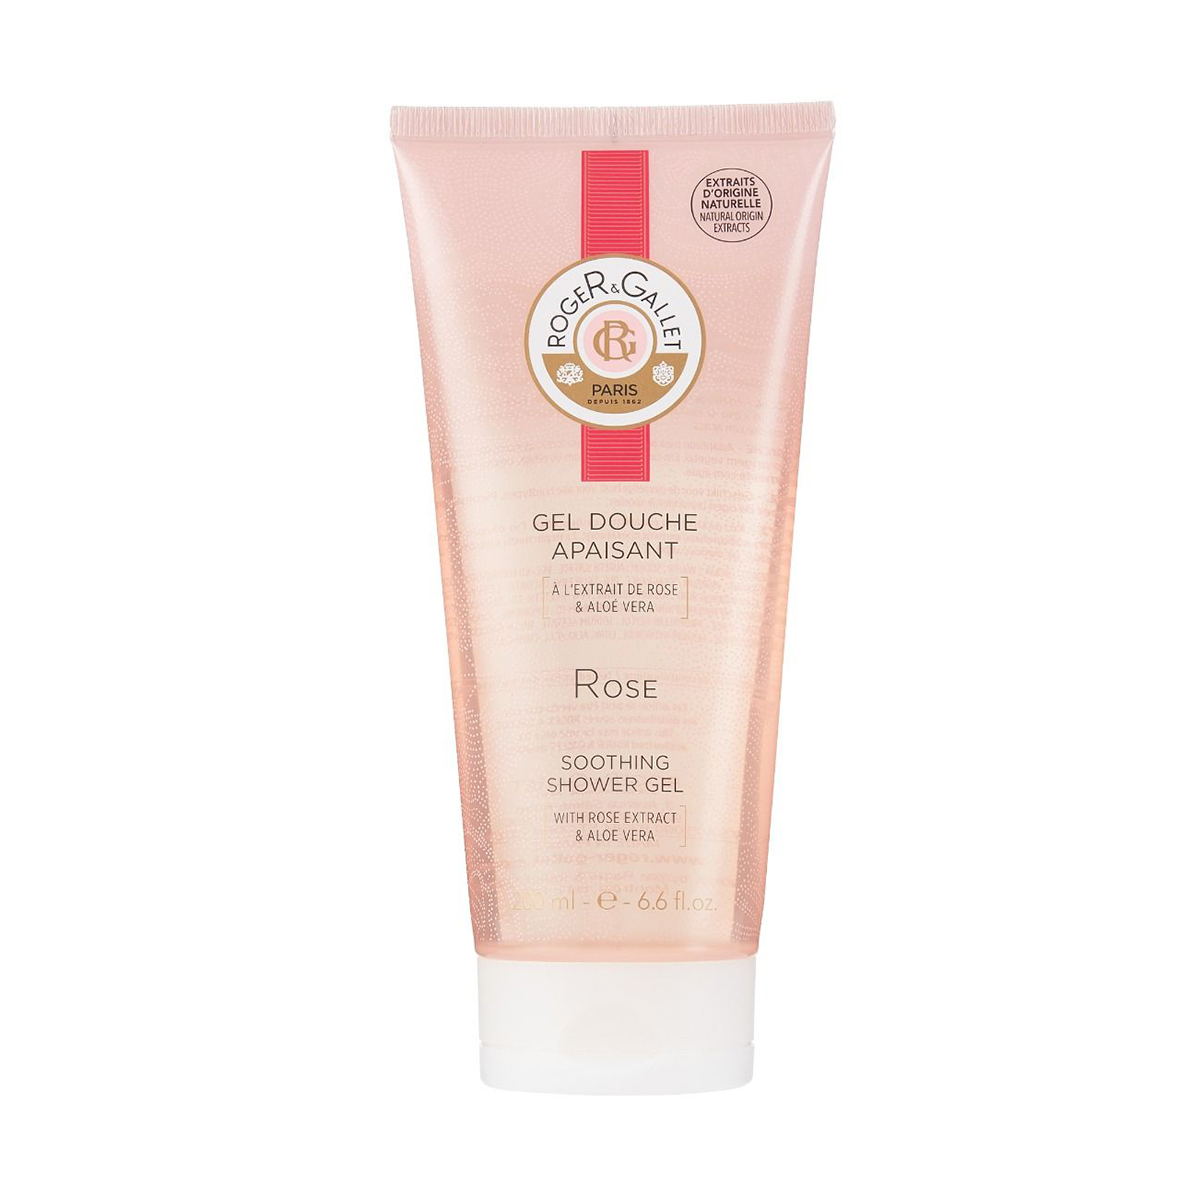 Gel Douche Apaisante Rose Roger Gallet - 200ml